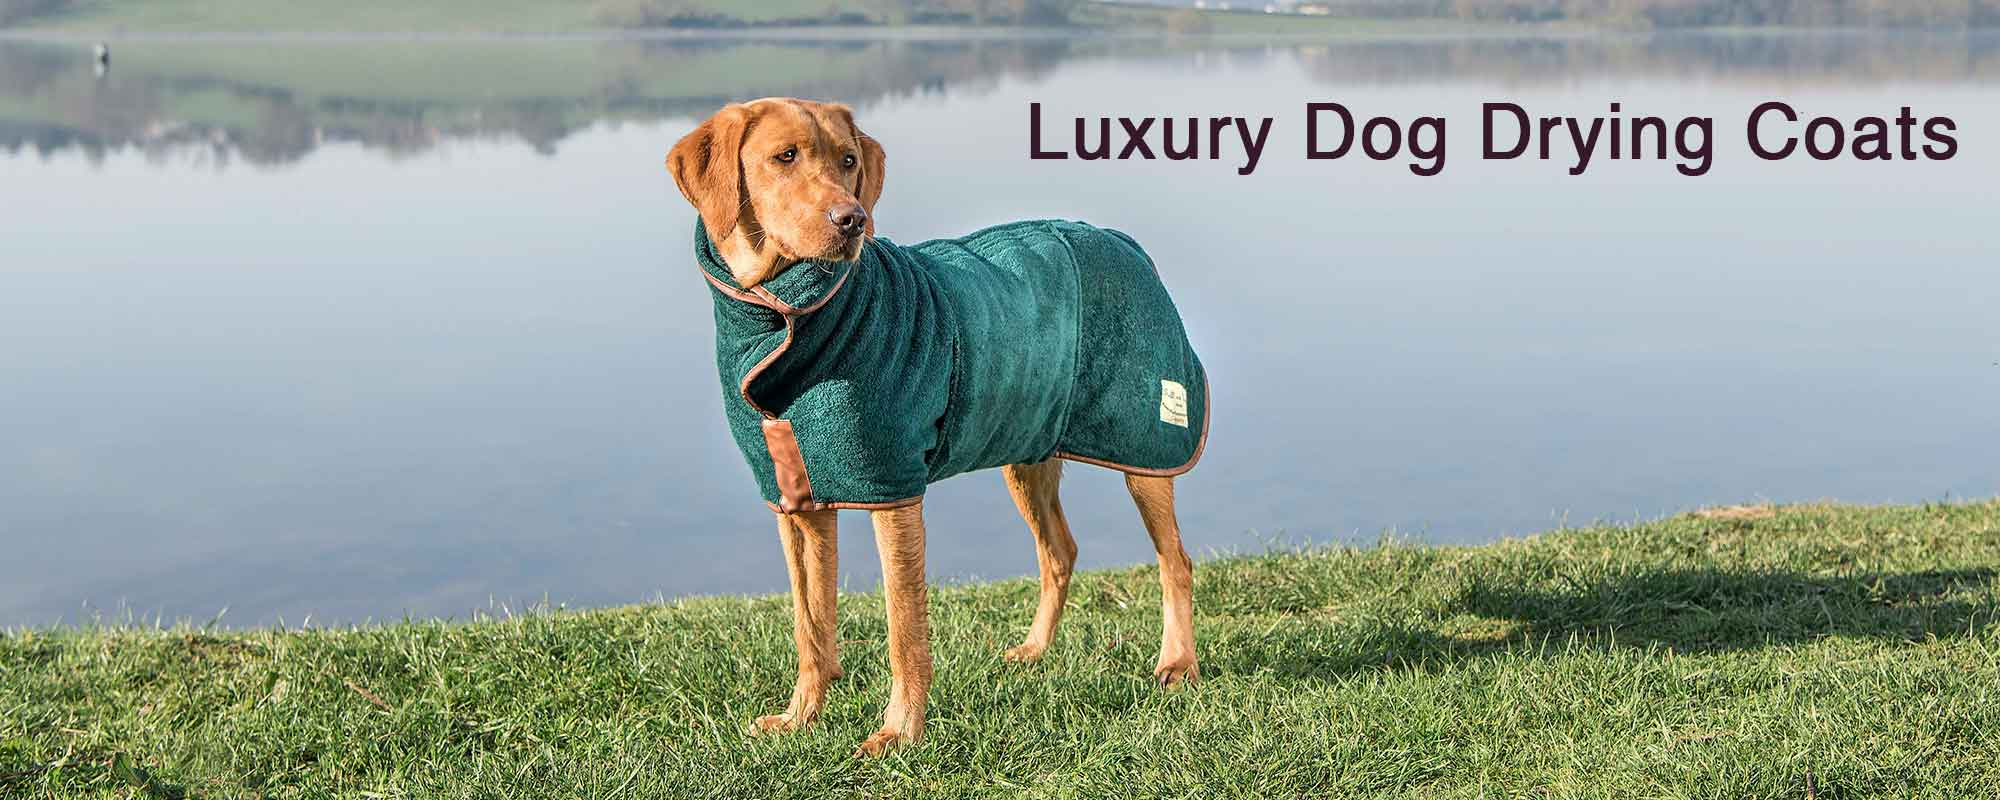 Ruff and Tumble Luxury Designer Dog Drying Coats in High Quality Cotton Towelling in a Range of Colours, Styles and Sizes - Buy Now at Unusual Designer Gifts UK Store